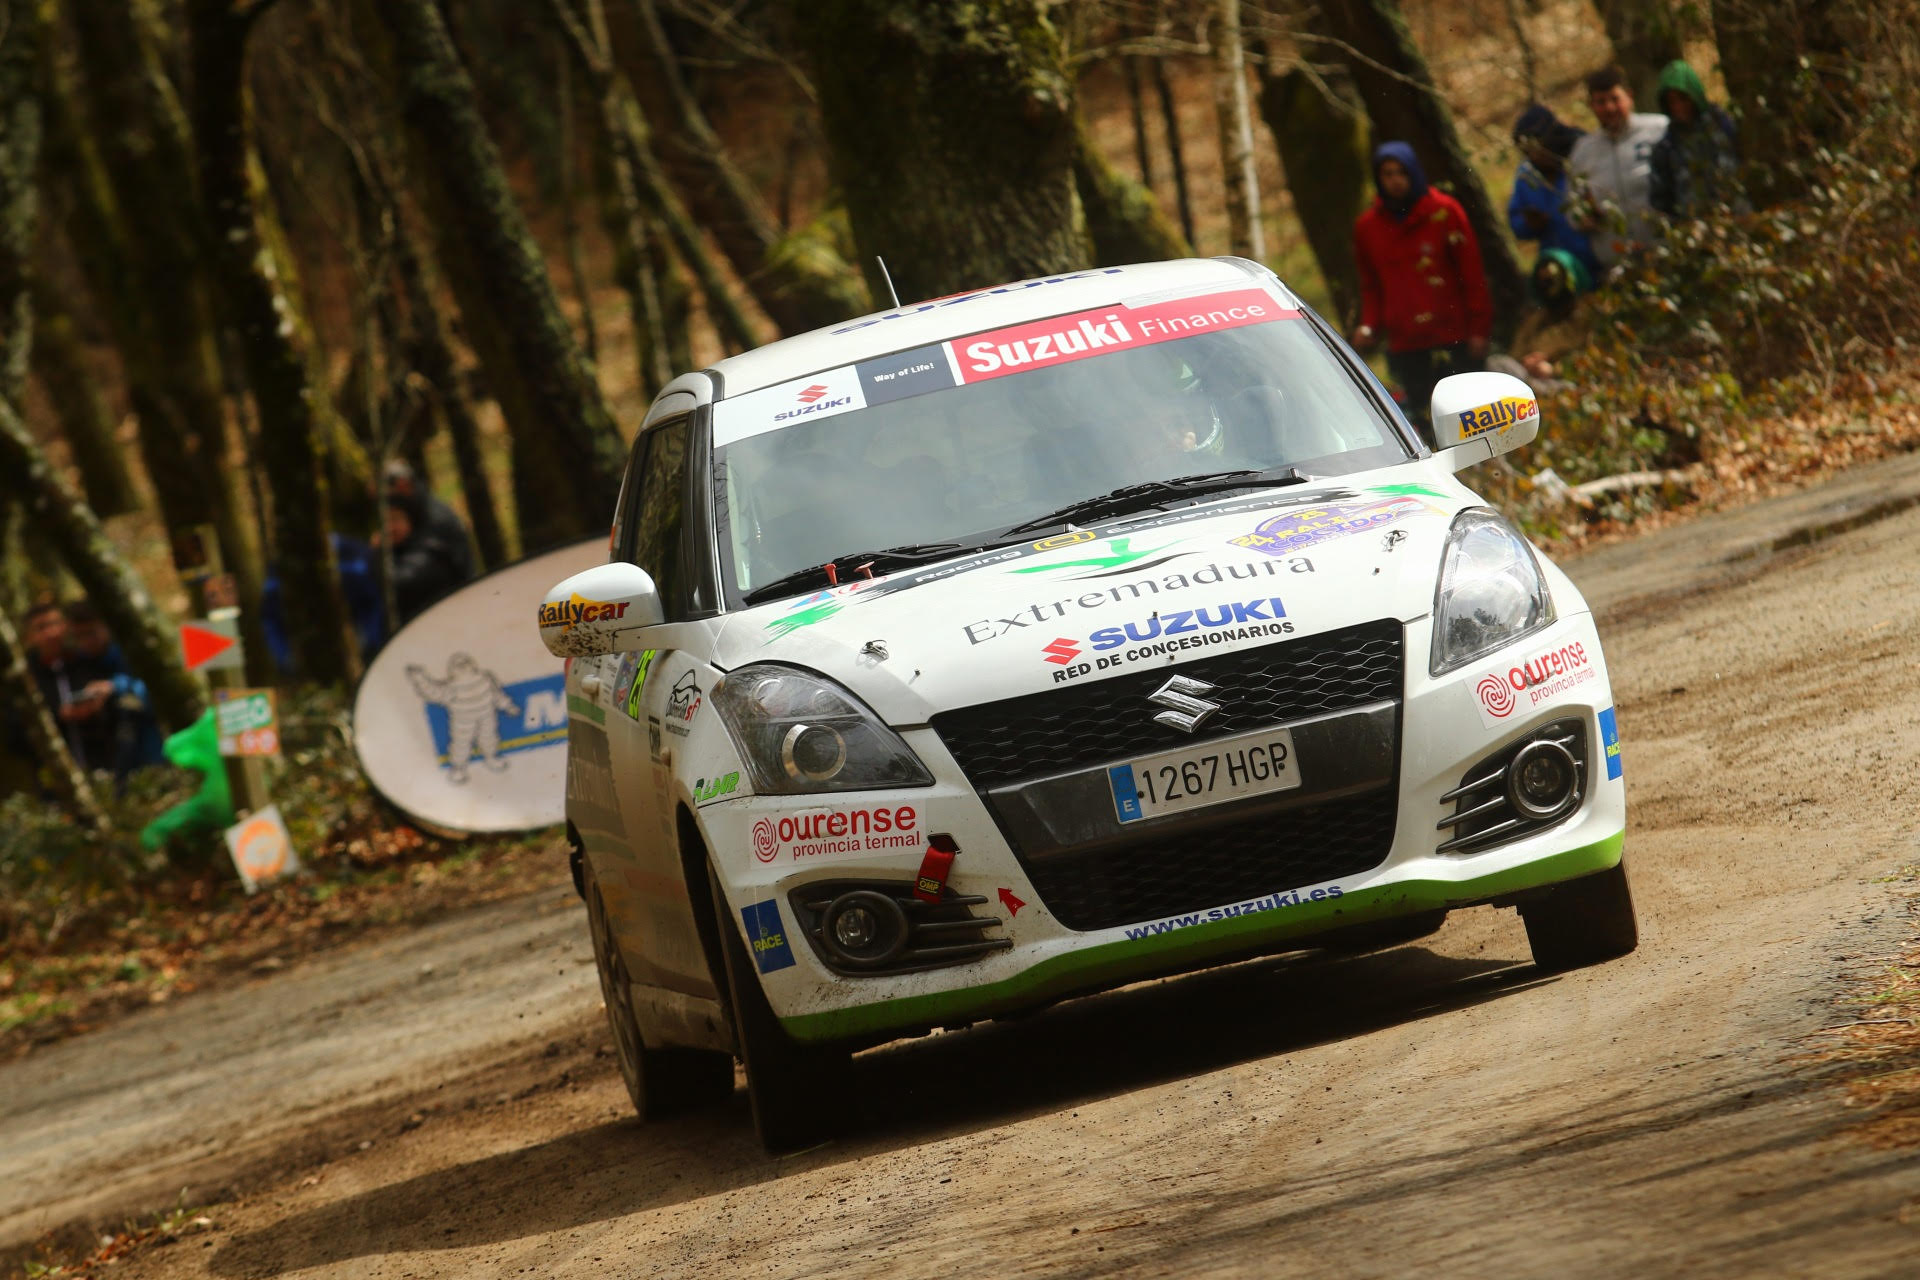 El Q Racing de Extremadura regresa a la Copa Suzuki Swift en Llanes